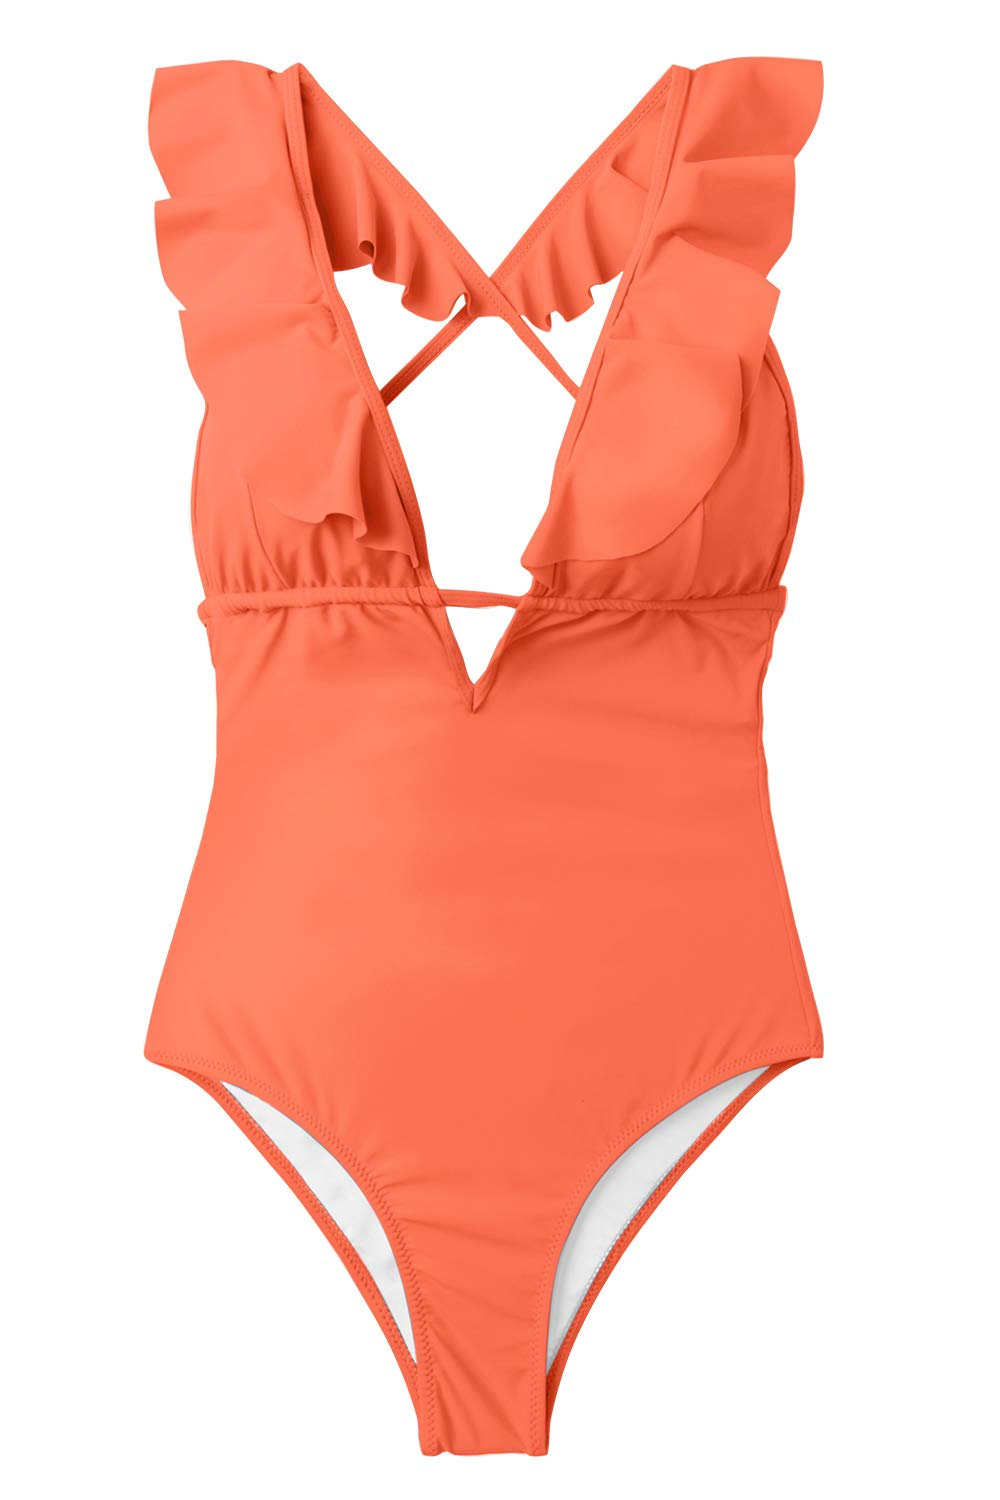 CUPSHE Women's Falbala One Piece Swimsuit Deep V Neck Monokini Swimsuit, Orange, Small